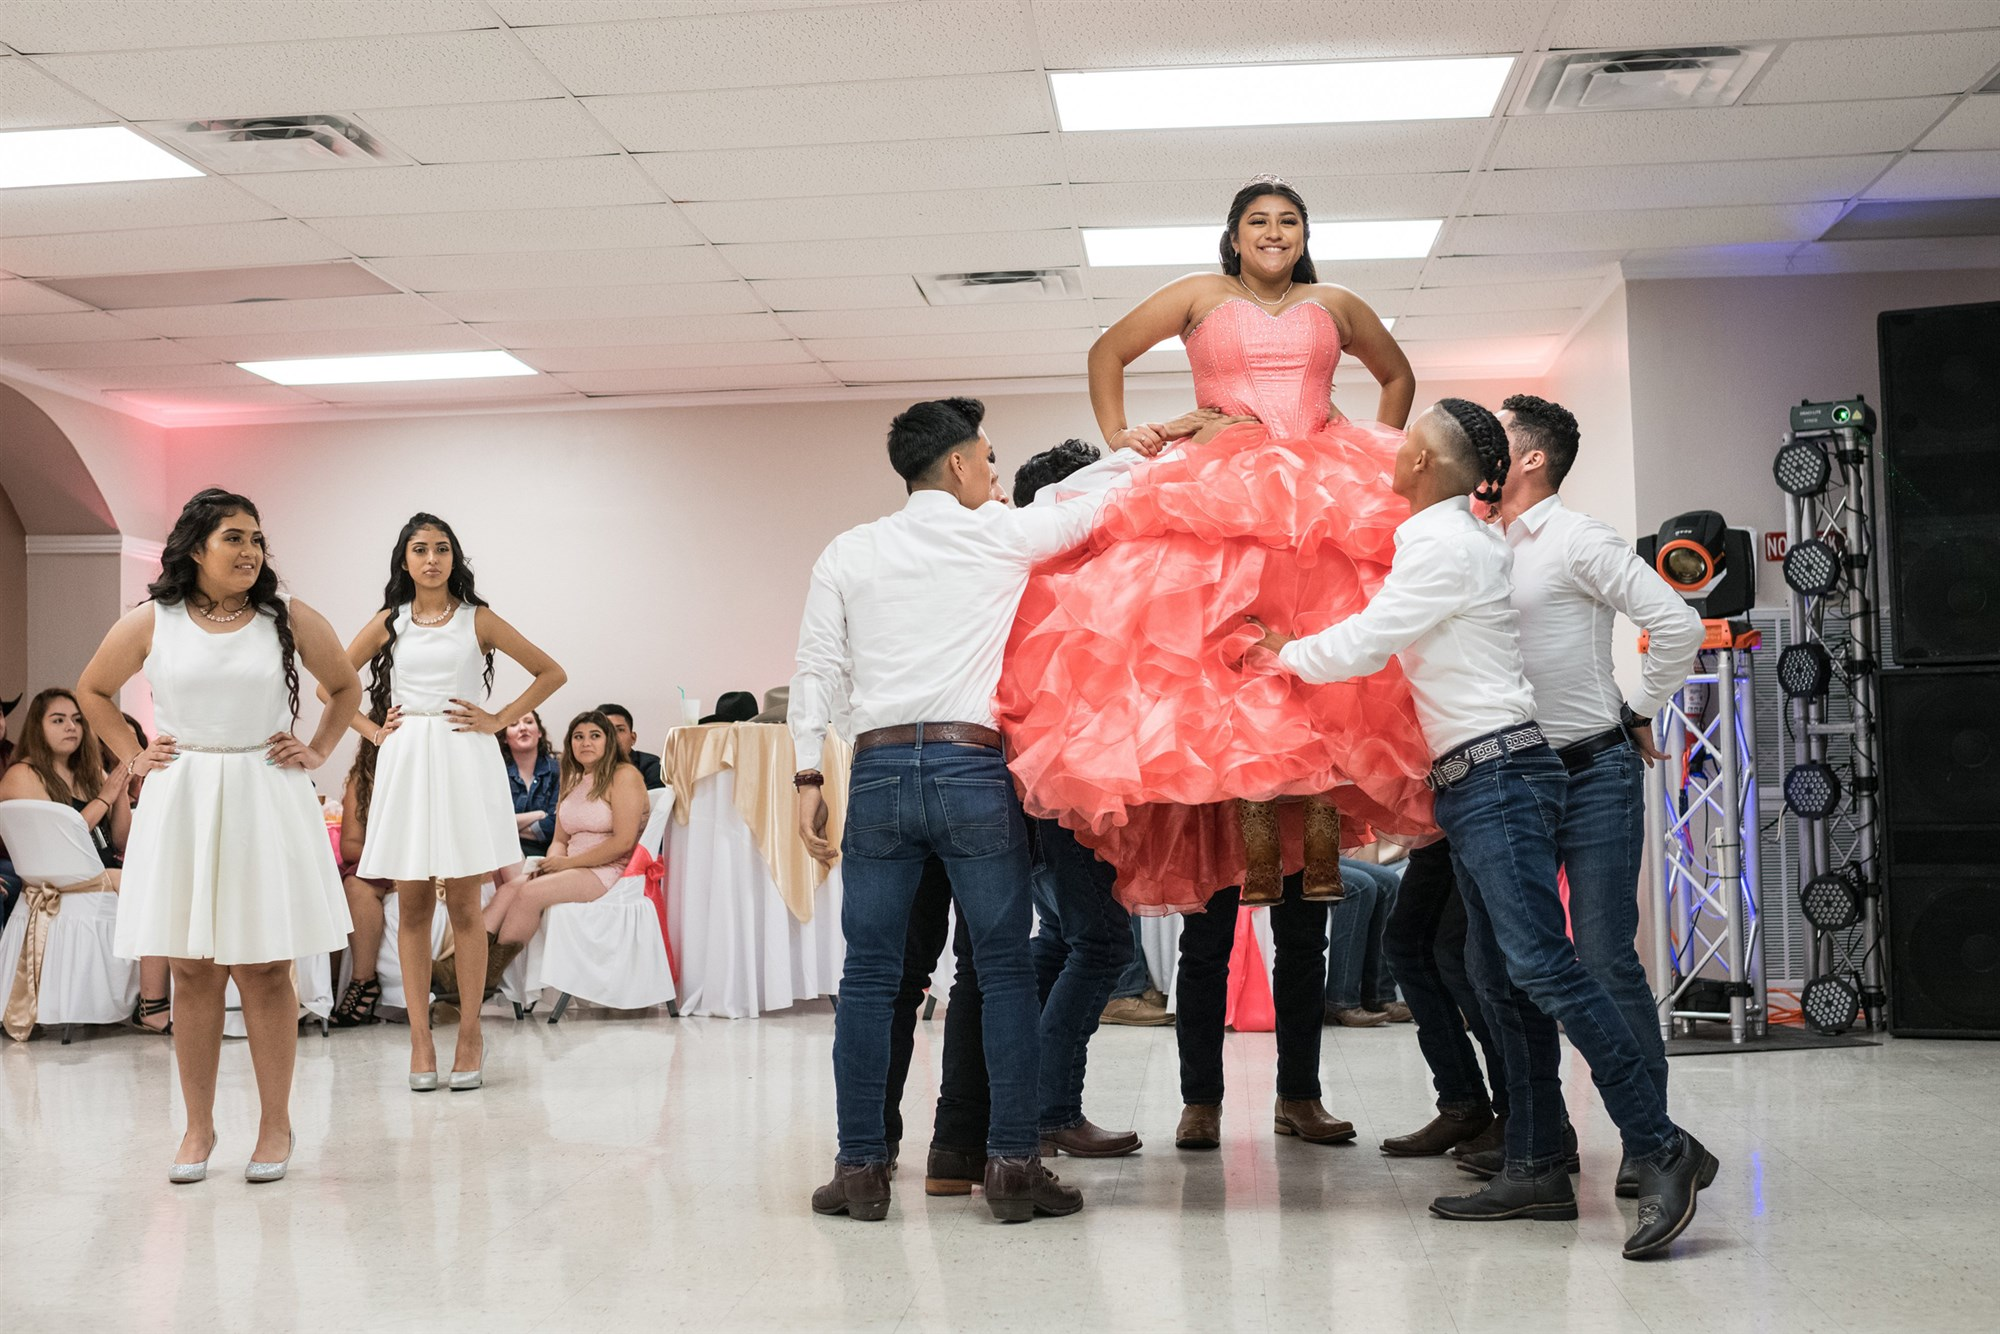 """Aleida Ramos is lifted in the air by the chamberlains of her court of honor while celebrating her quinceañera with family and friends in Houston. During a short speech, Ramos encouraged those eligible to register to vote at a """"Poder Quince"""" station set up near the event hall's front door.Loren Elliott / for NBC News"""